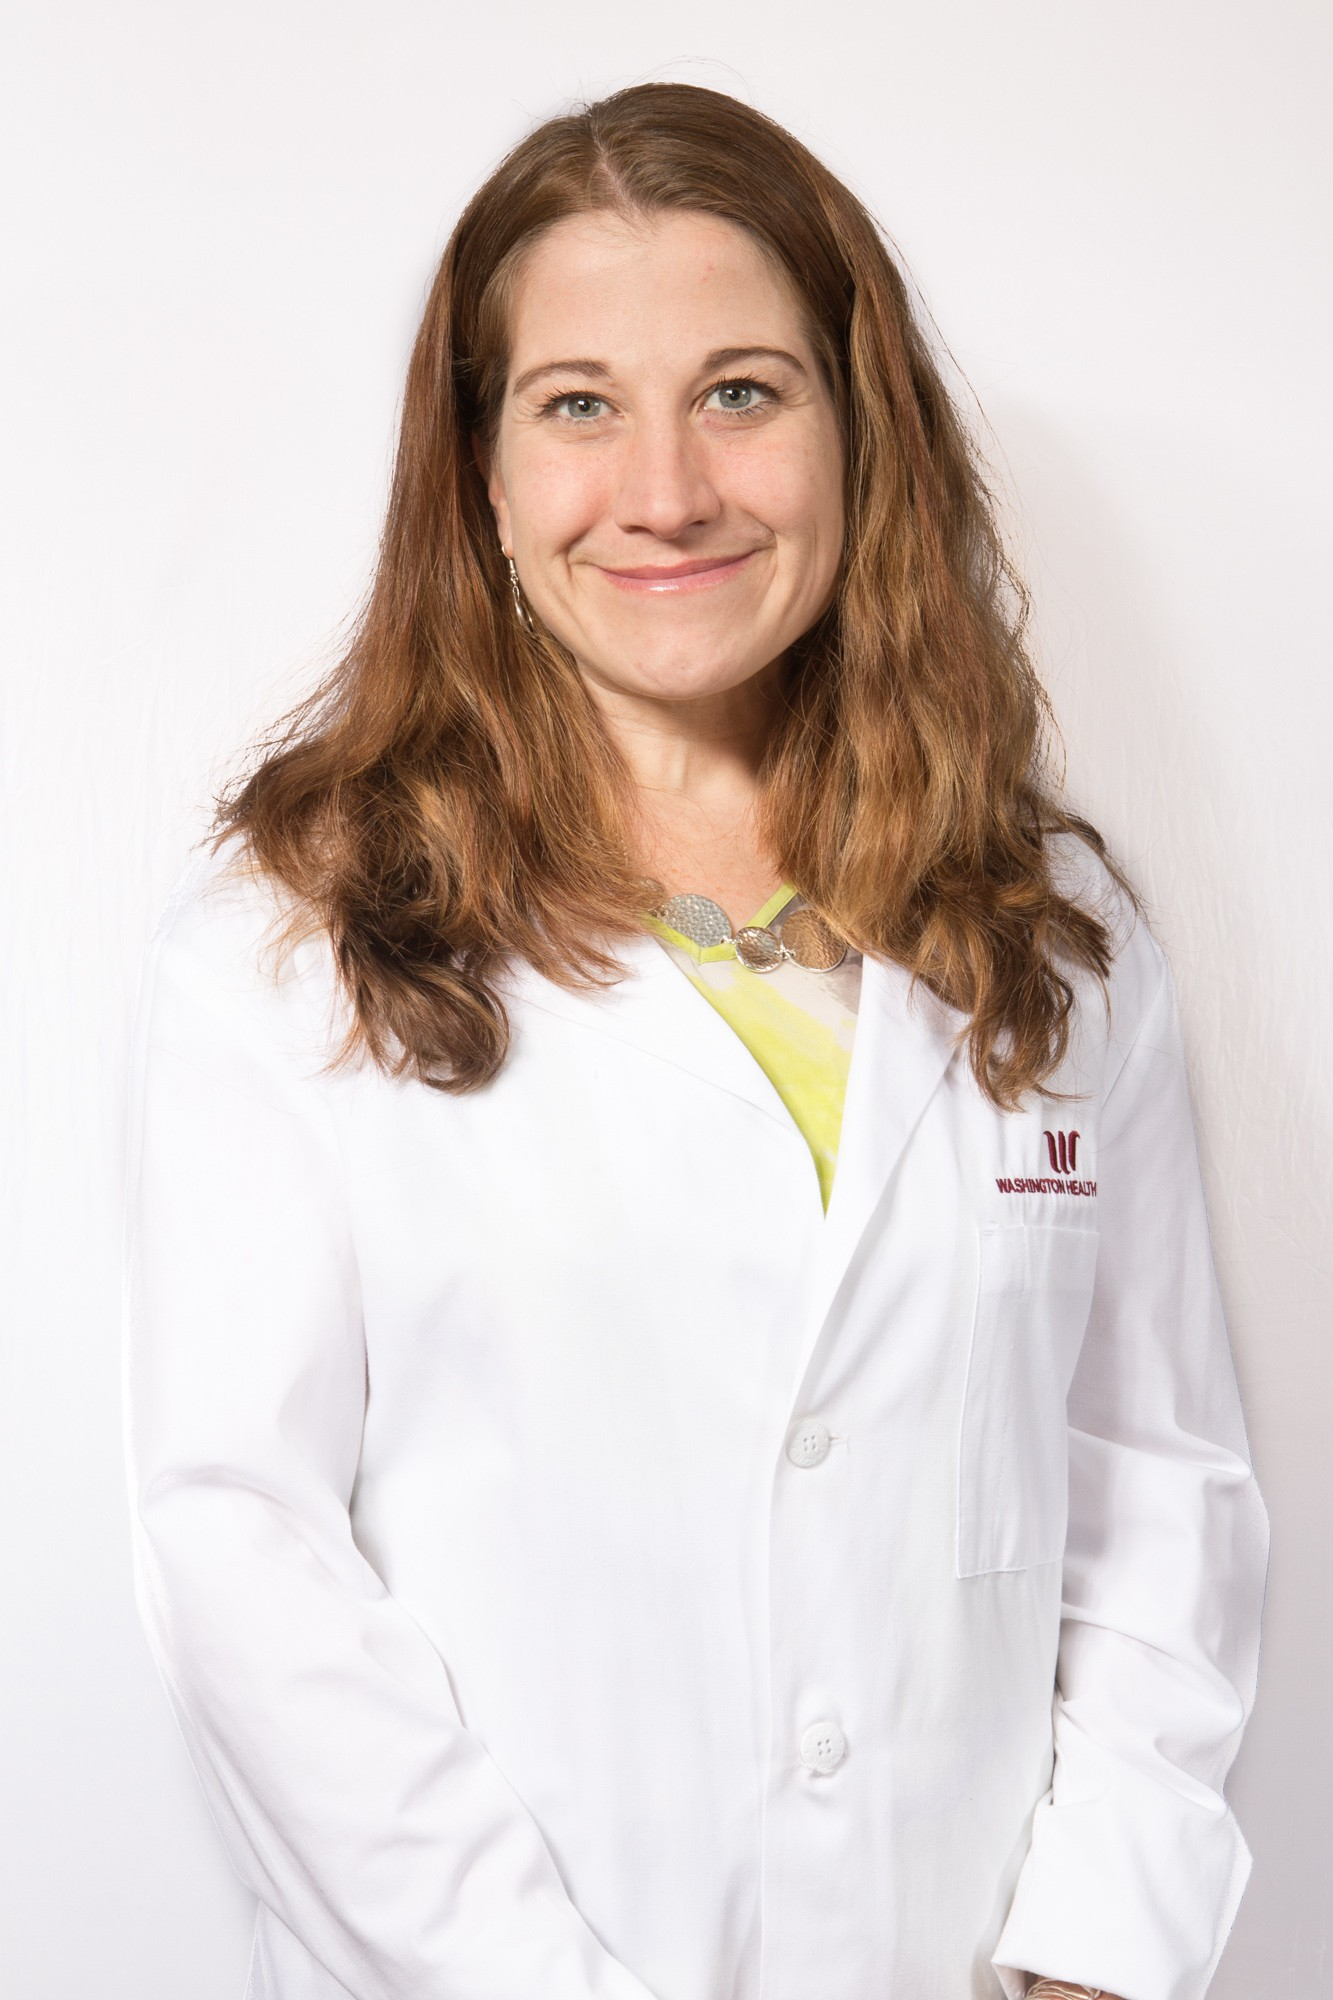 Photo of Richelle C. Sommerfield, M.D.